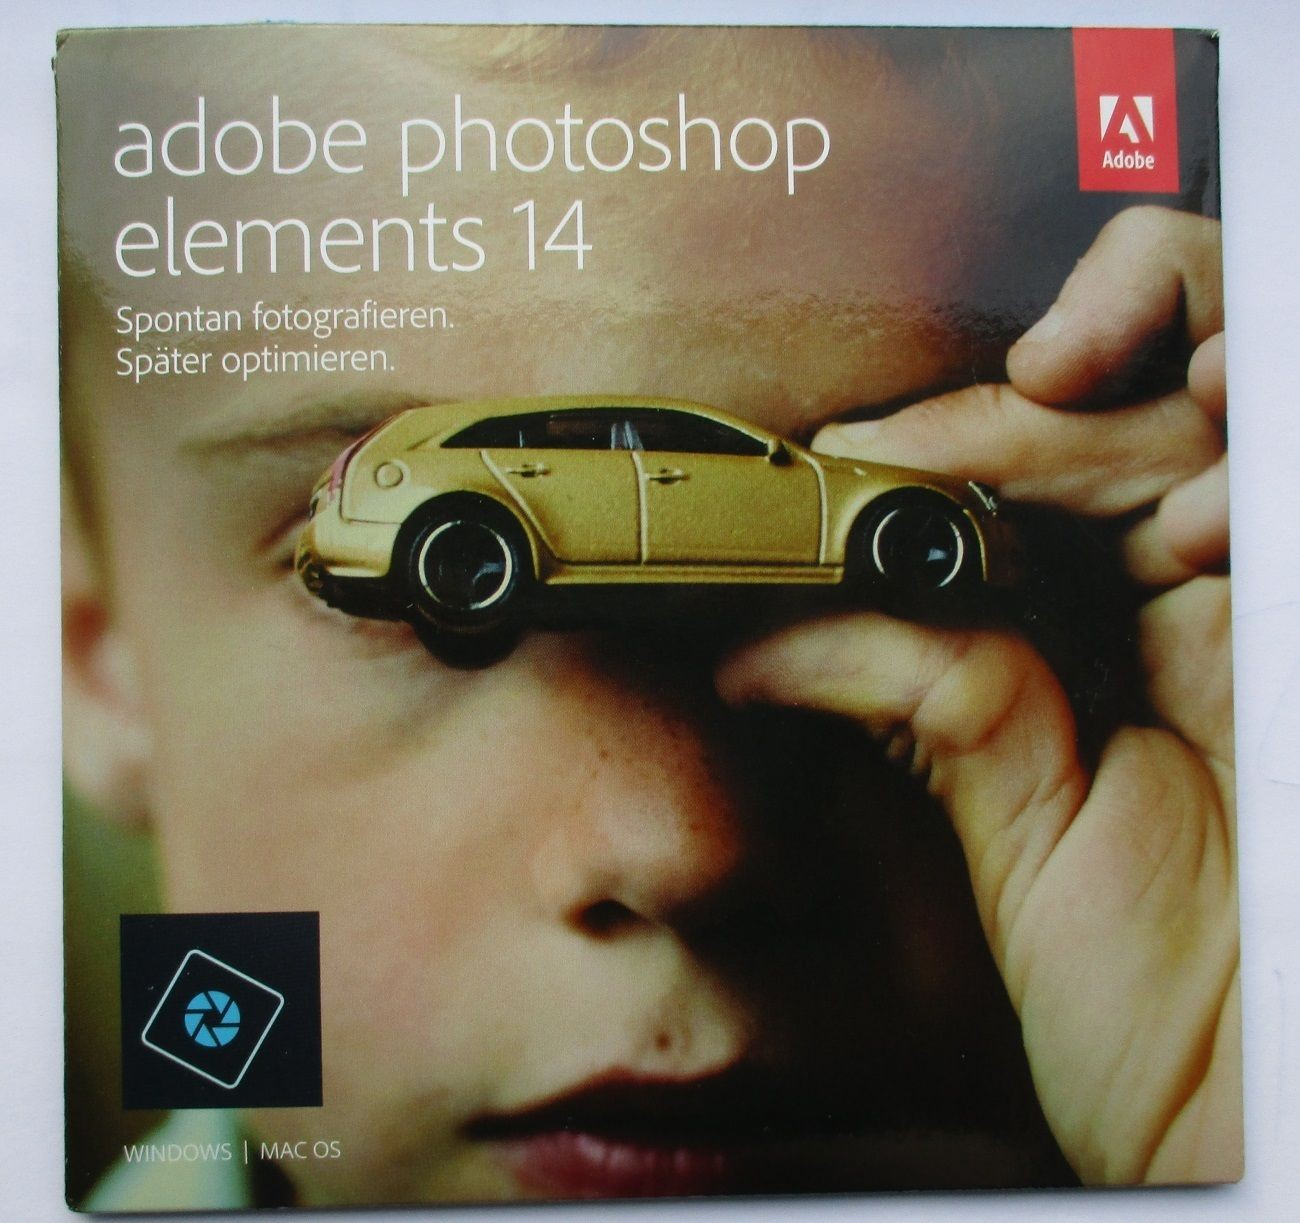 Adobe Photoshop Elements 14 - Download - Deutsche